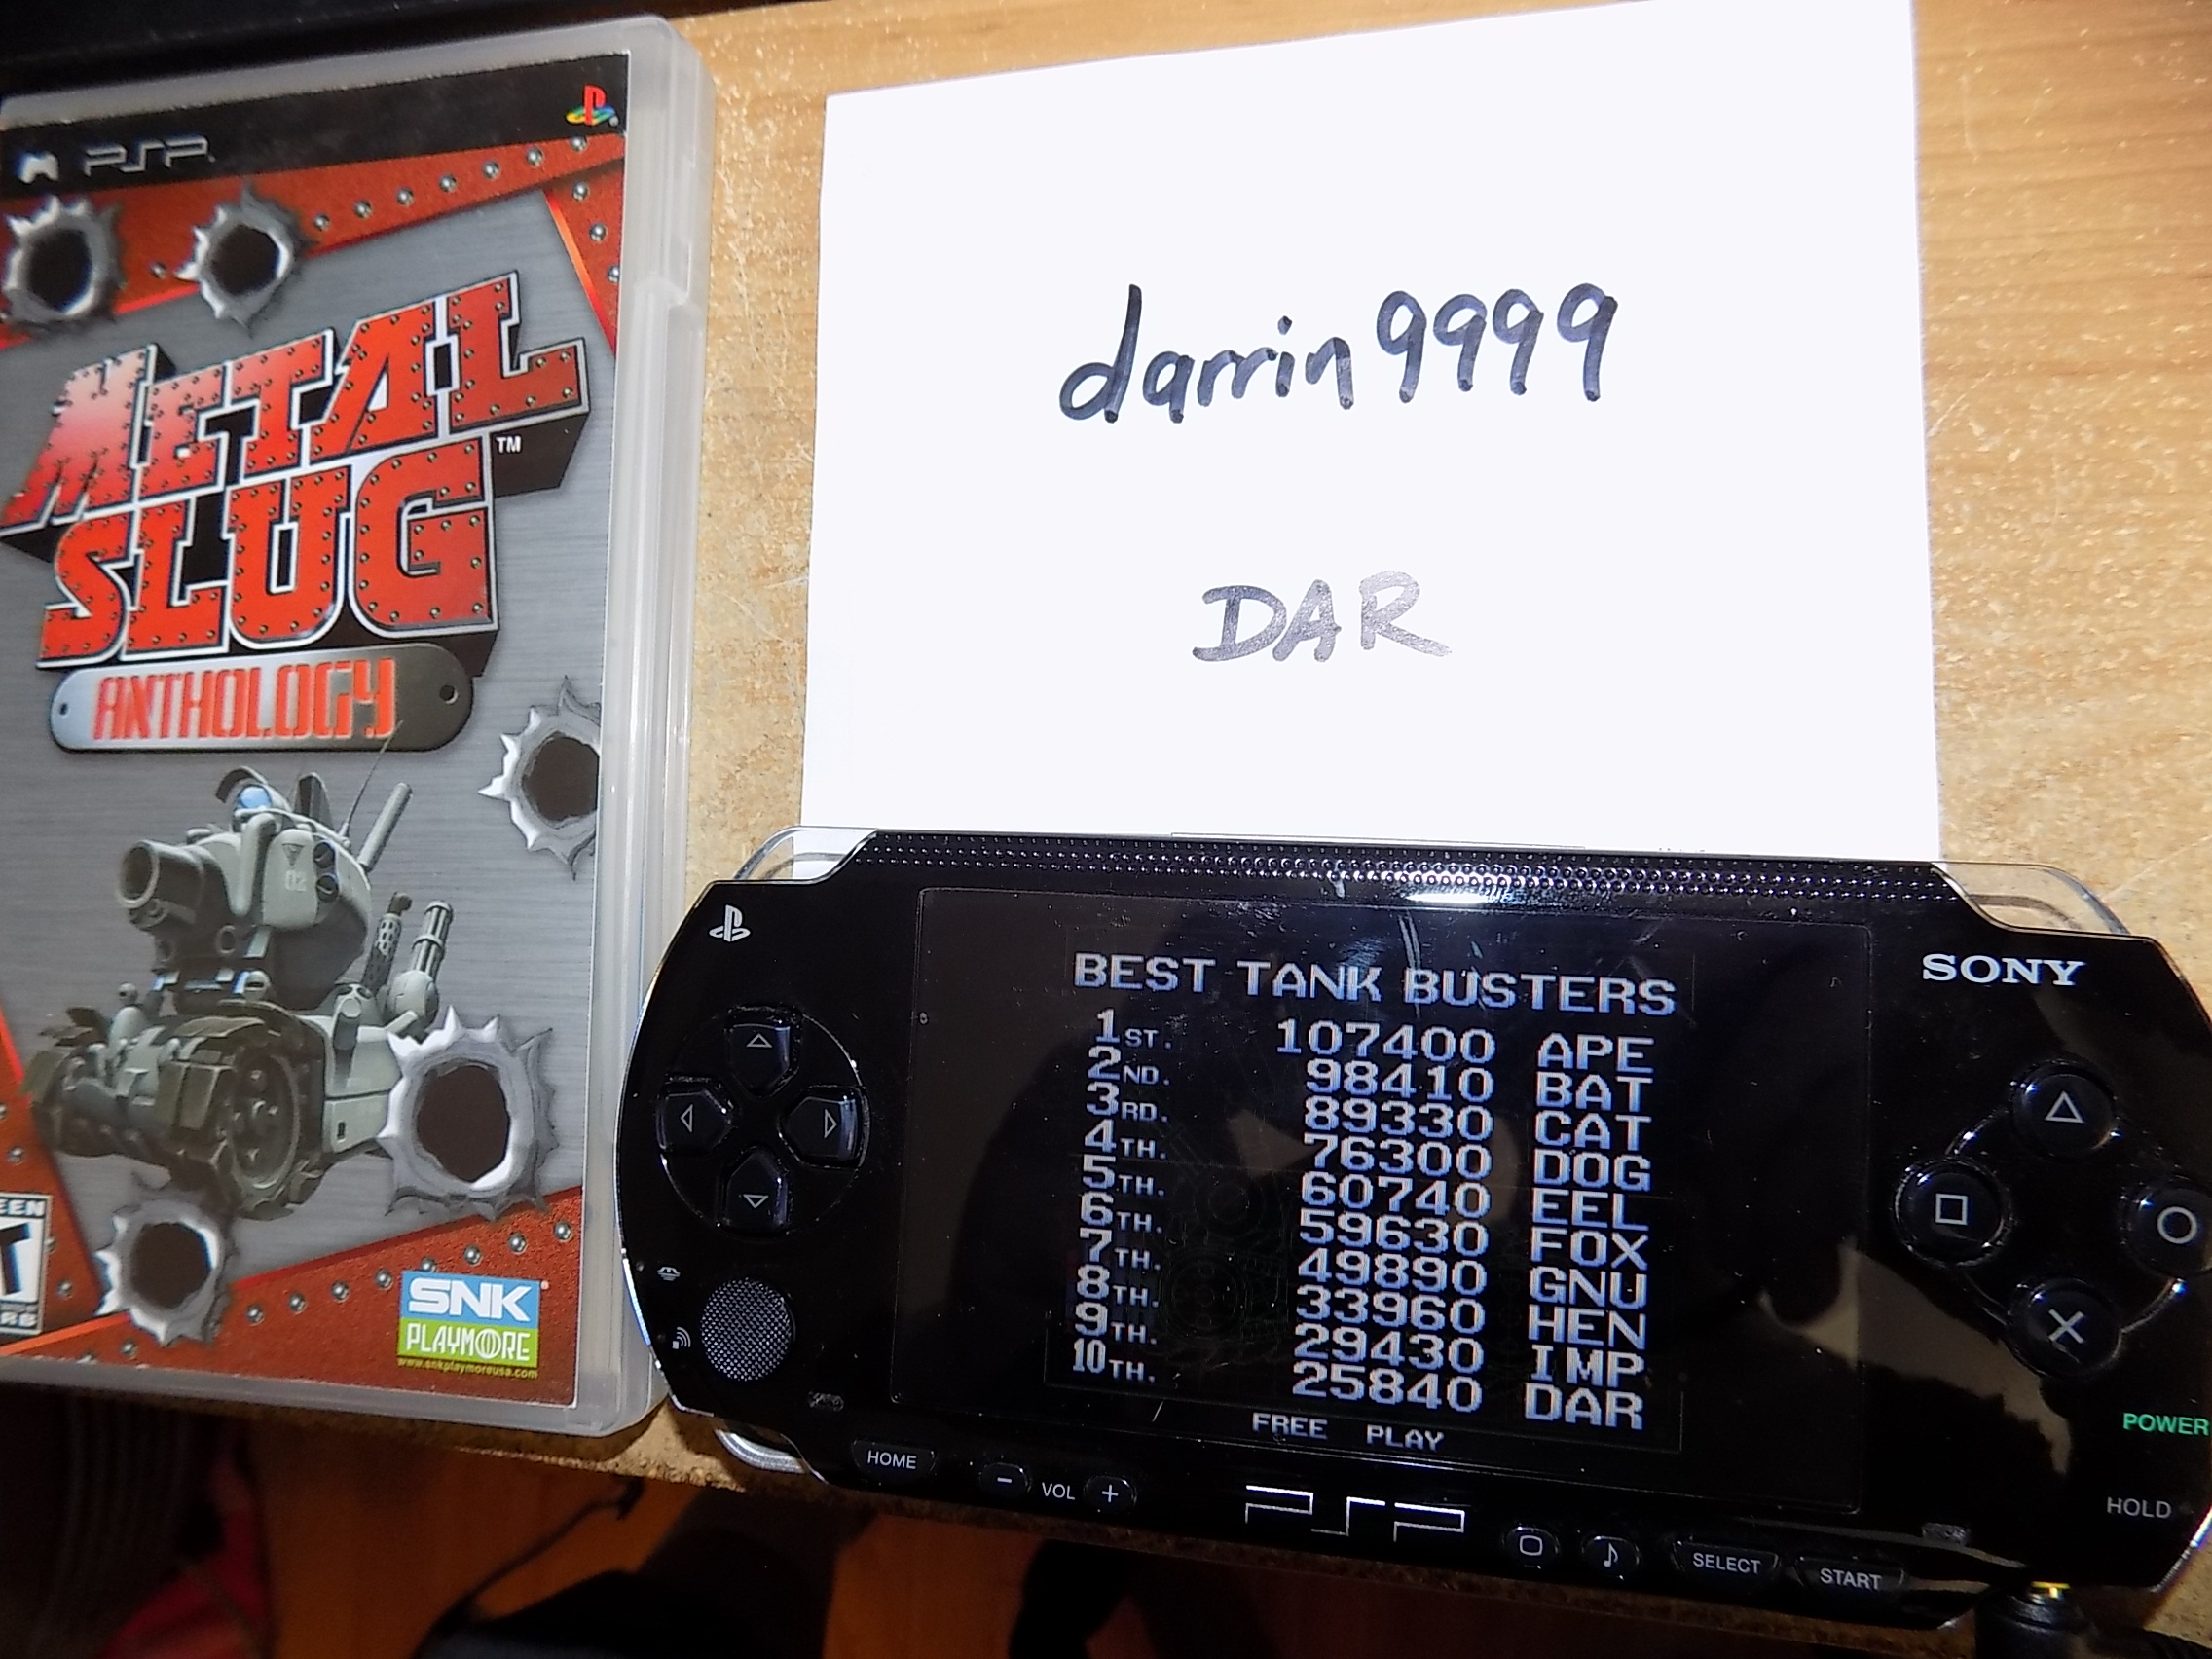 darrin9999: Metal Slug Anthology: Metal Slug 3 (PSP) 25,840 points on 2018-09-14 15:42:21